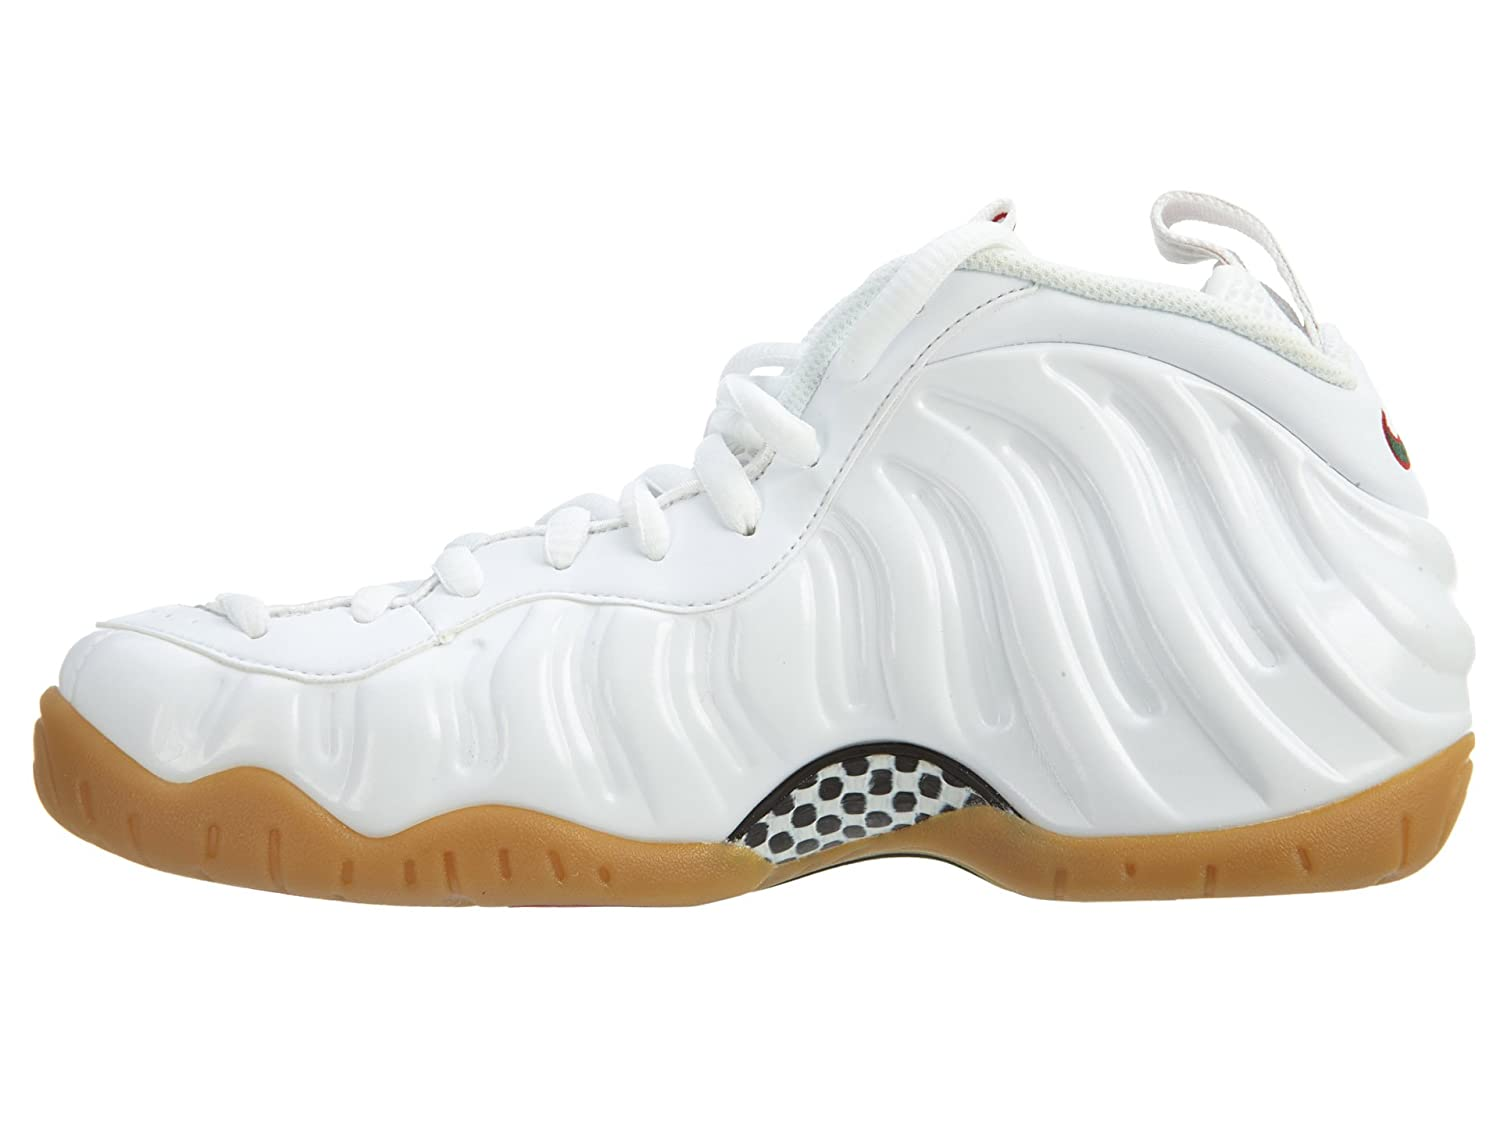 4970d2b9454a8 Nike mens foamposite pro white gucci white red gorge green us basketball  jpg 1500x1125 Nike foamposite